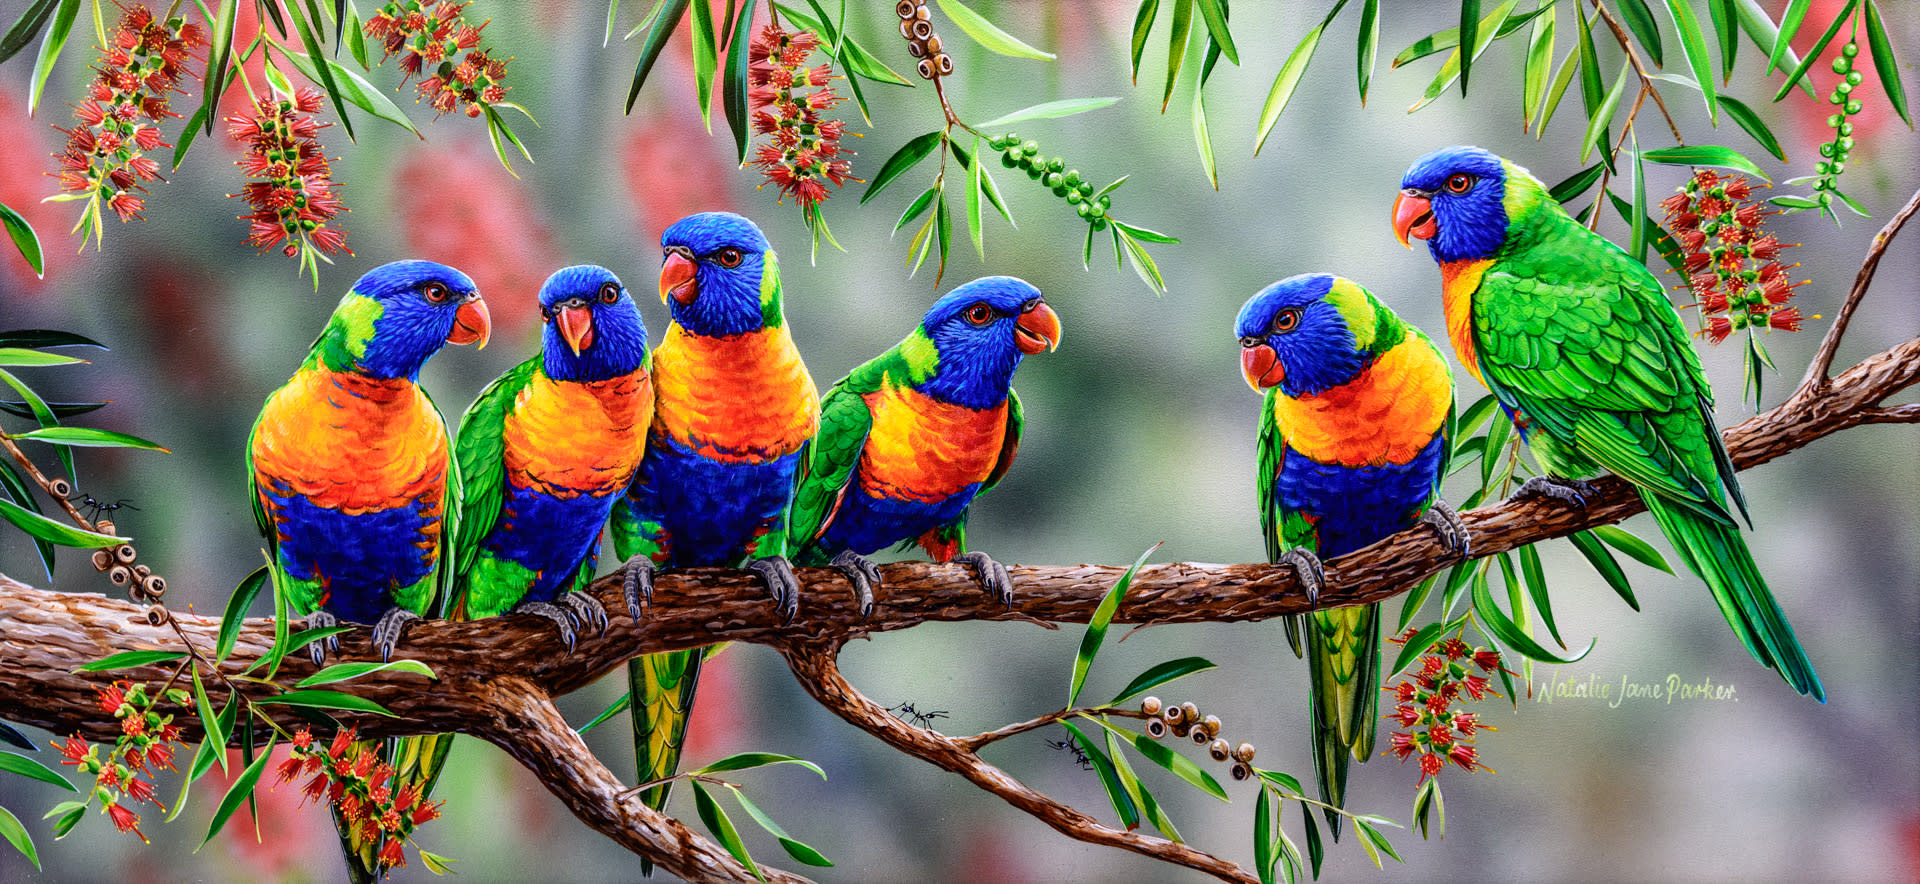 Colourful chatter   rainbow lorikeet natalie jane parker australian native wildlife yrvvg7